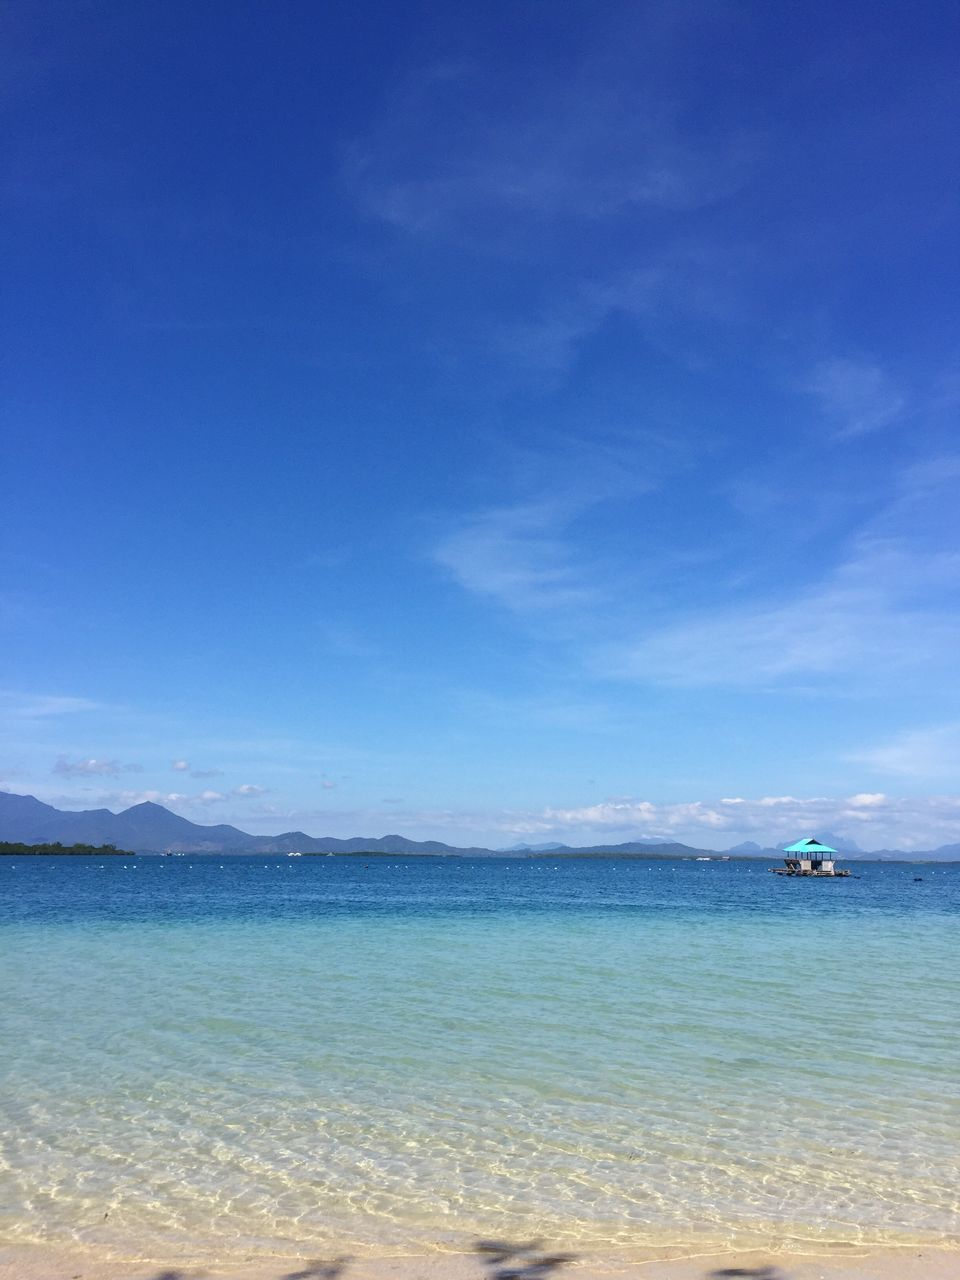 Scenic view of sea against blue sky on sunny day